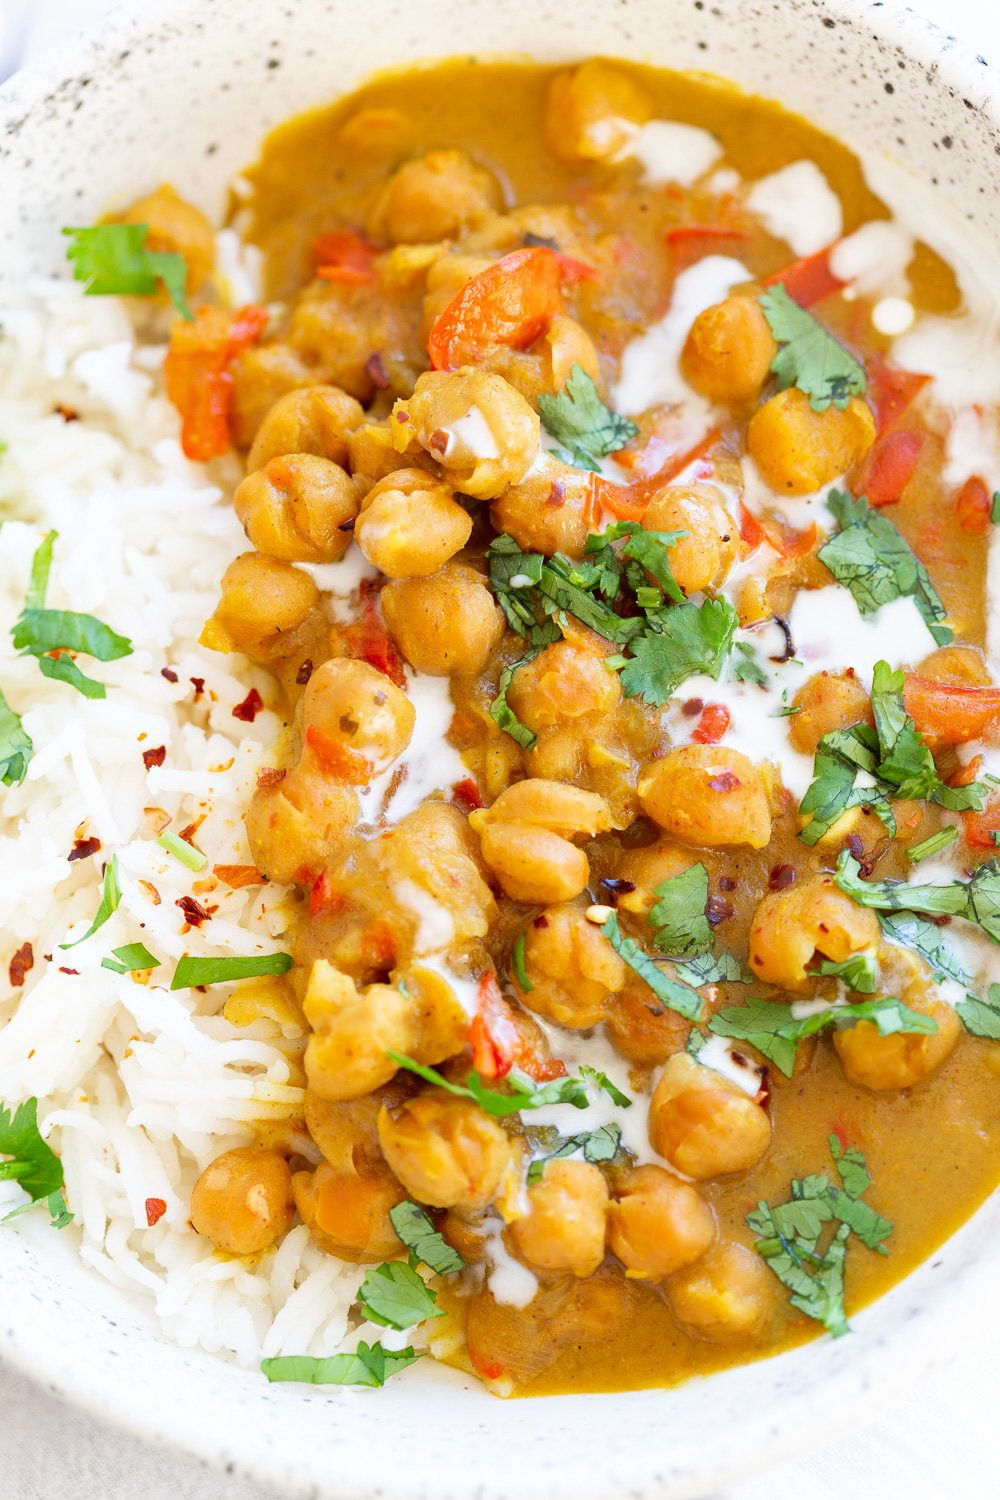 Chickpea Coconut Curry - Instant Pot or Saucepan. This 1 Pot Coconut Chickpea Curry is flavorful and Easy. Add other veggies like sweet potato, squash. #Vegan #Glutenfree #Nutfree #Soyfree #Recipe #Chickpeacoconutcurry #veganricha.